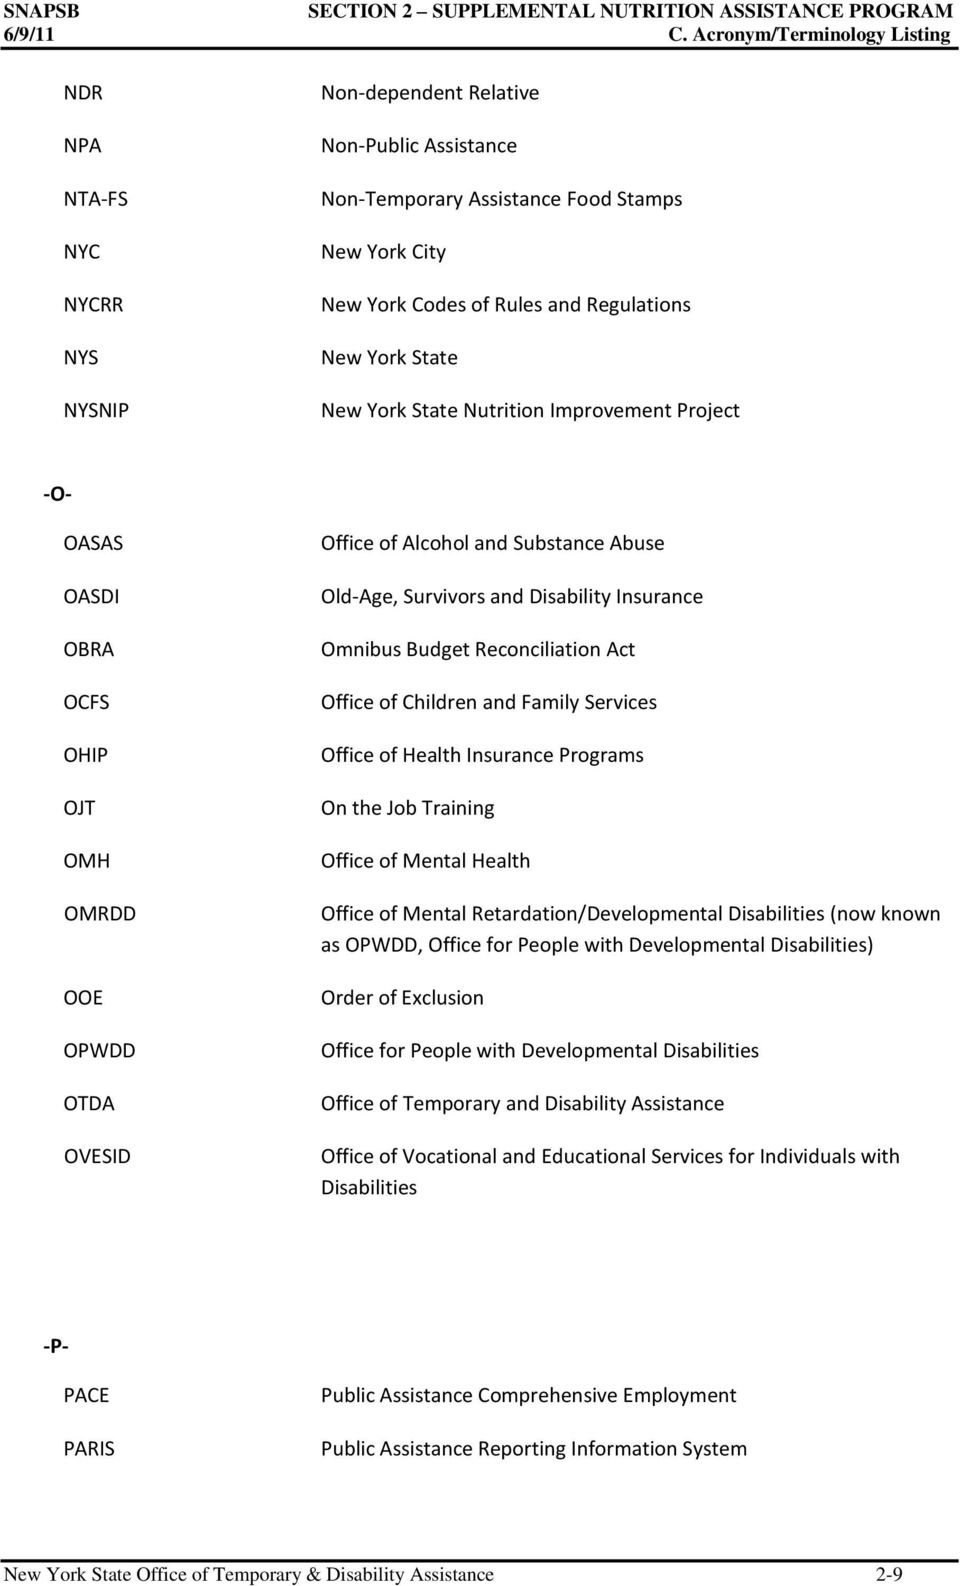 New York State New York State Nutrition Improvement Project -O- OASAS OASDI OBRA OCFS OHIP OJT OMH OMRDD OOE OPWDD OTDA OVESID Office of Alcohol and Substance Abuse Old-Age, Survivors and Disability